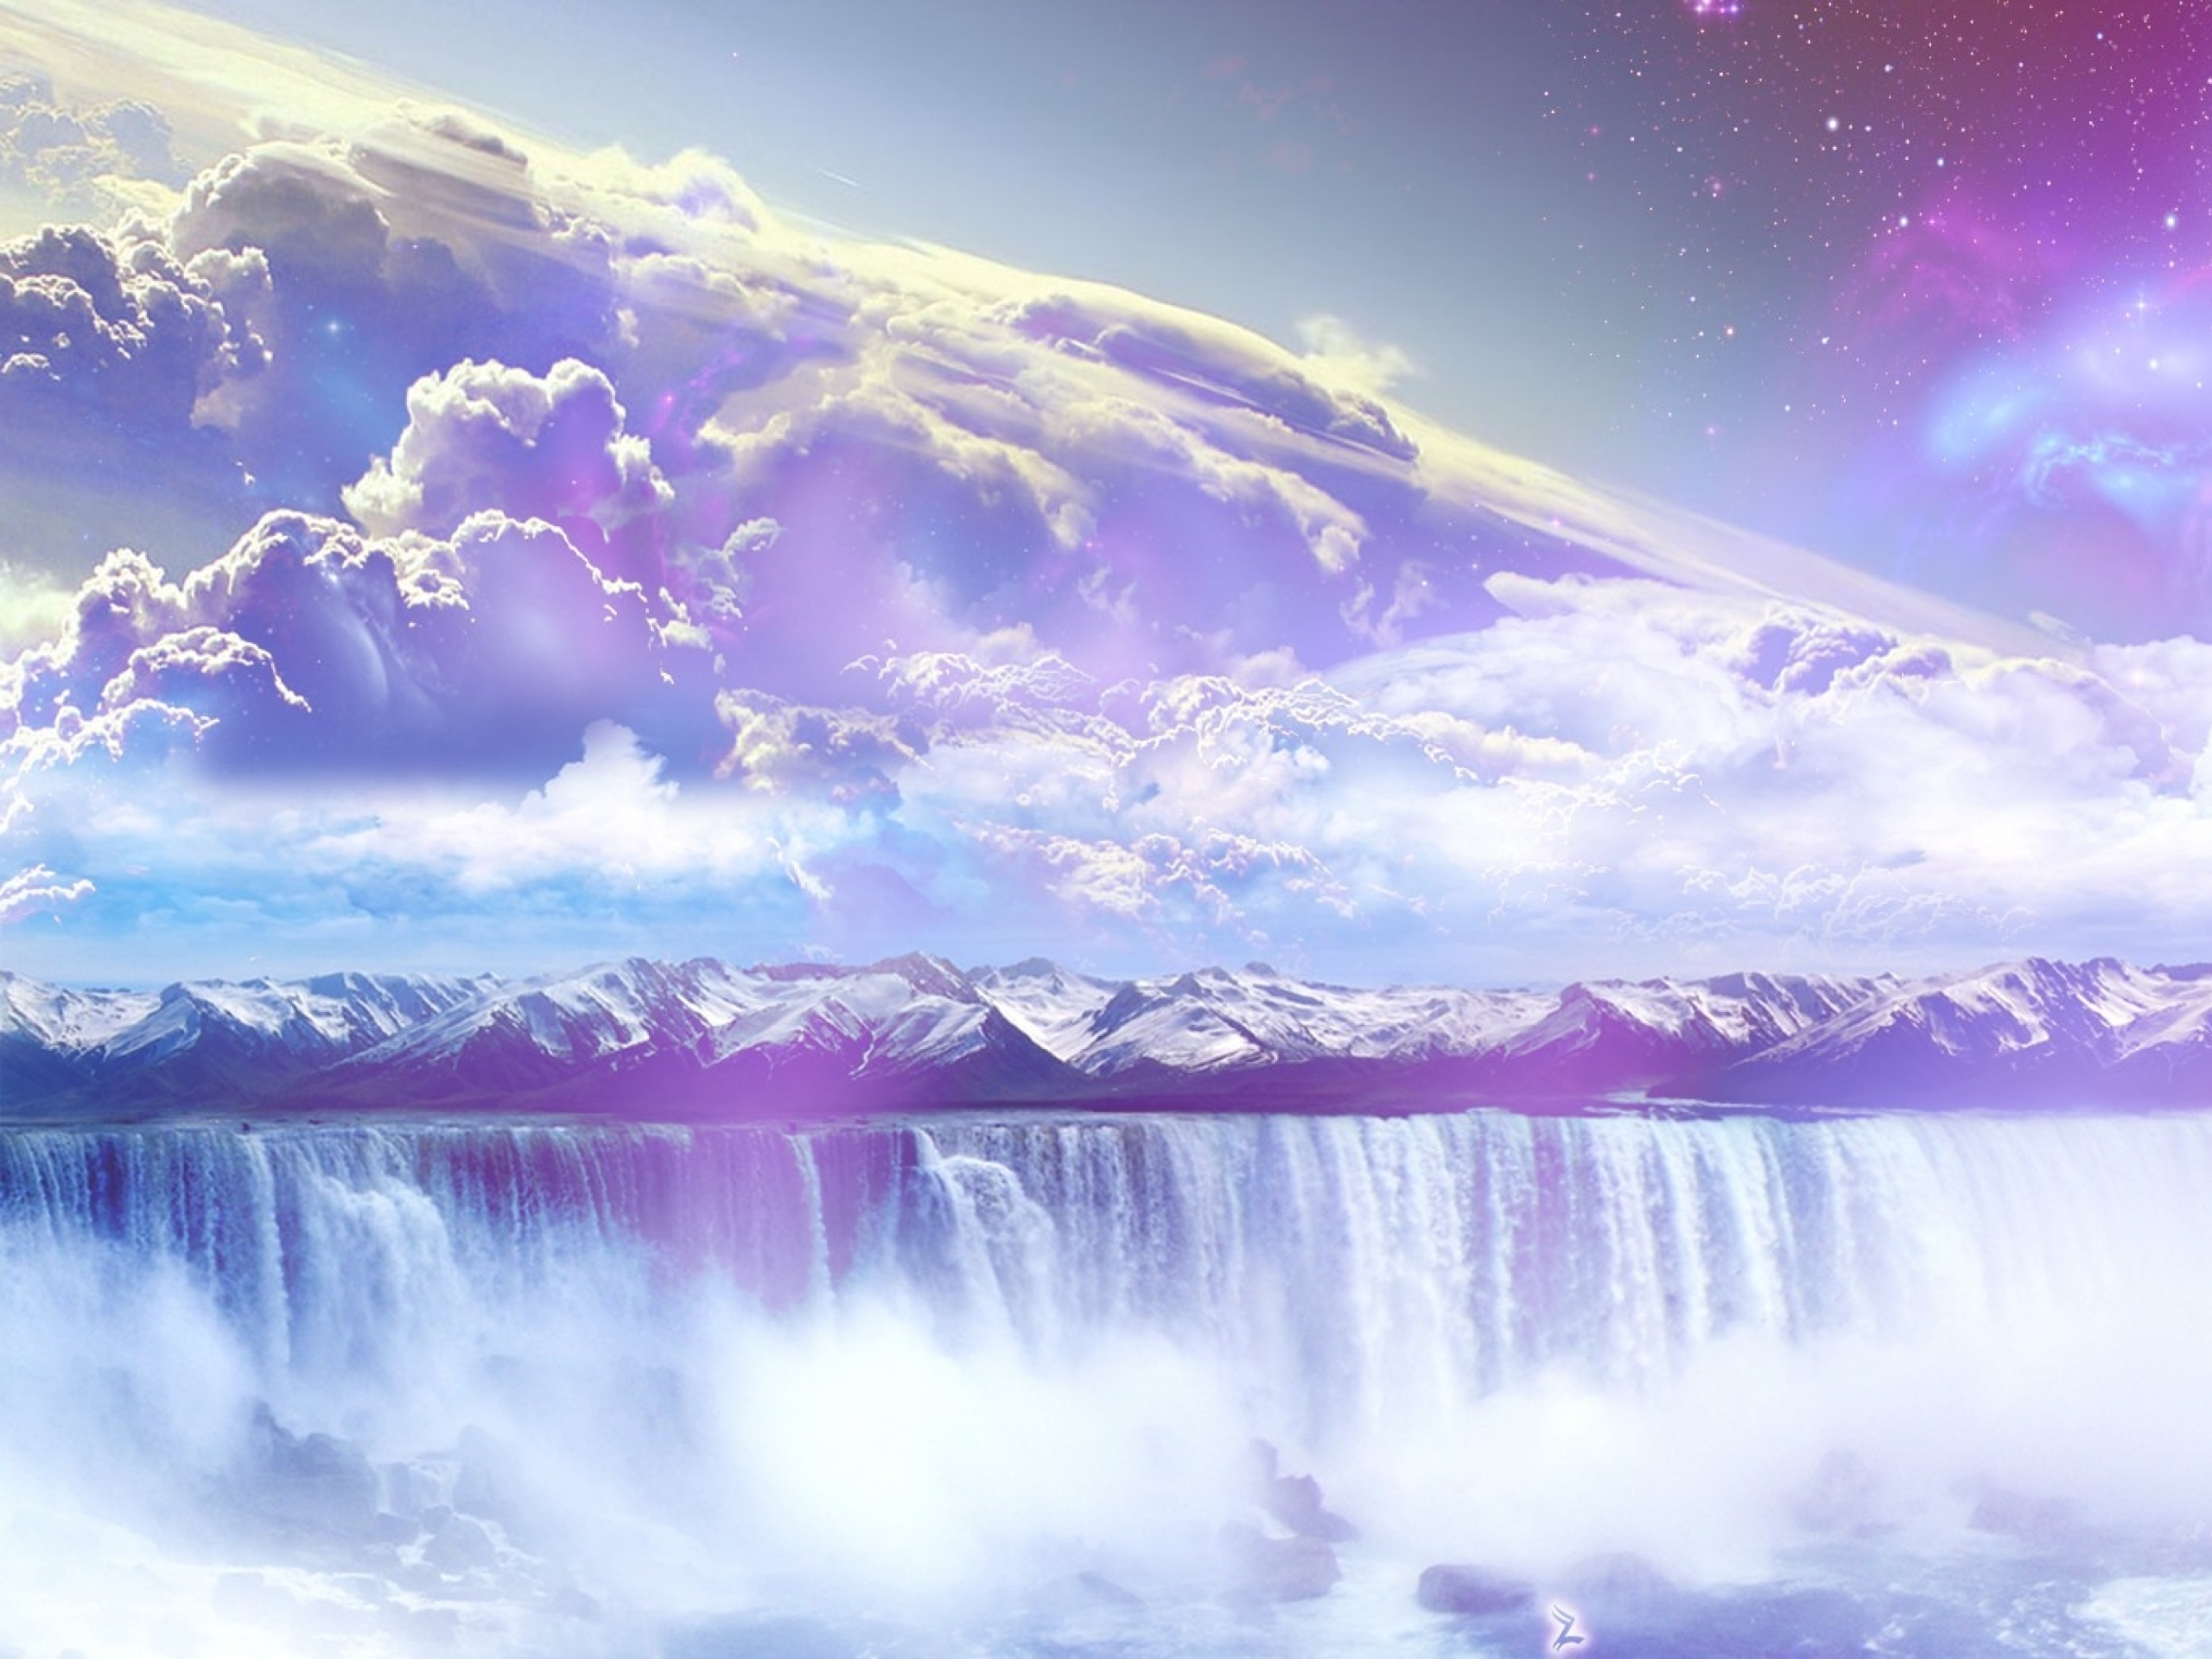 3d Fractal Wallpapers Hd Galaxy Wasserfall Berge Himmel Hintergrundbilder Galaxy